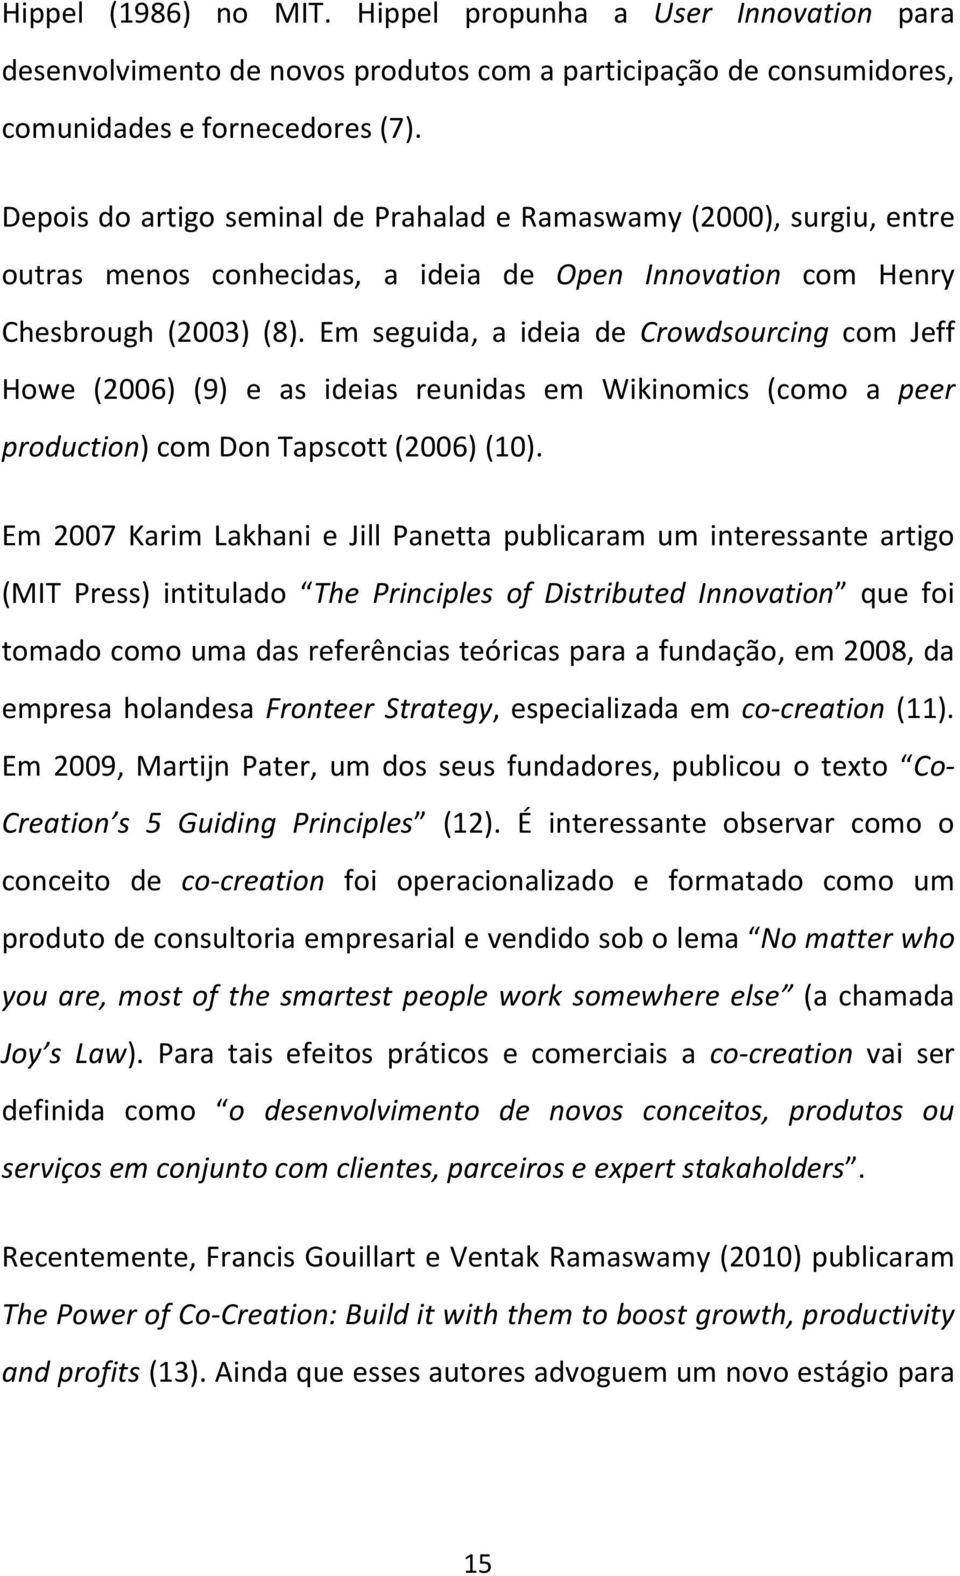 Em seguida, a ideia de Crowdsourcing com Jeff Howe (2006) (9) e as ideias reunidas em Wikinomics (como a peer production) com Don Tapscott (2006) (10).